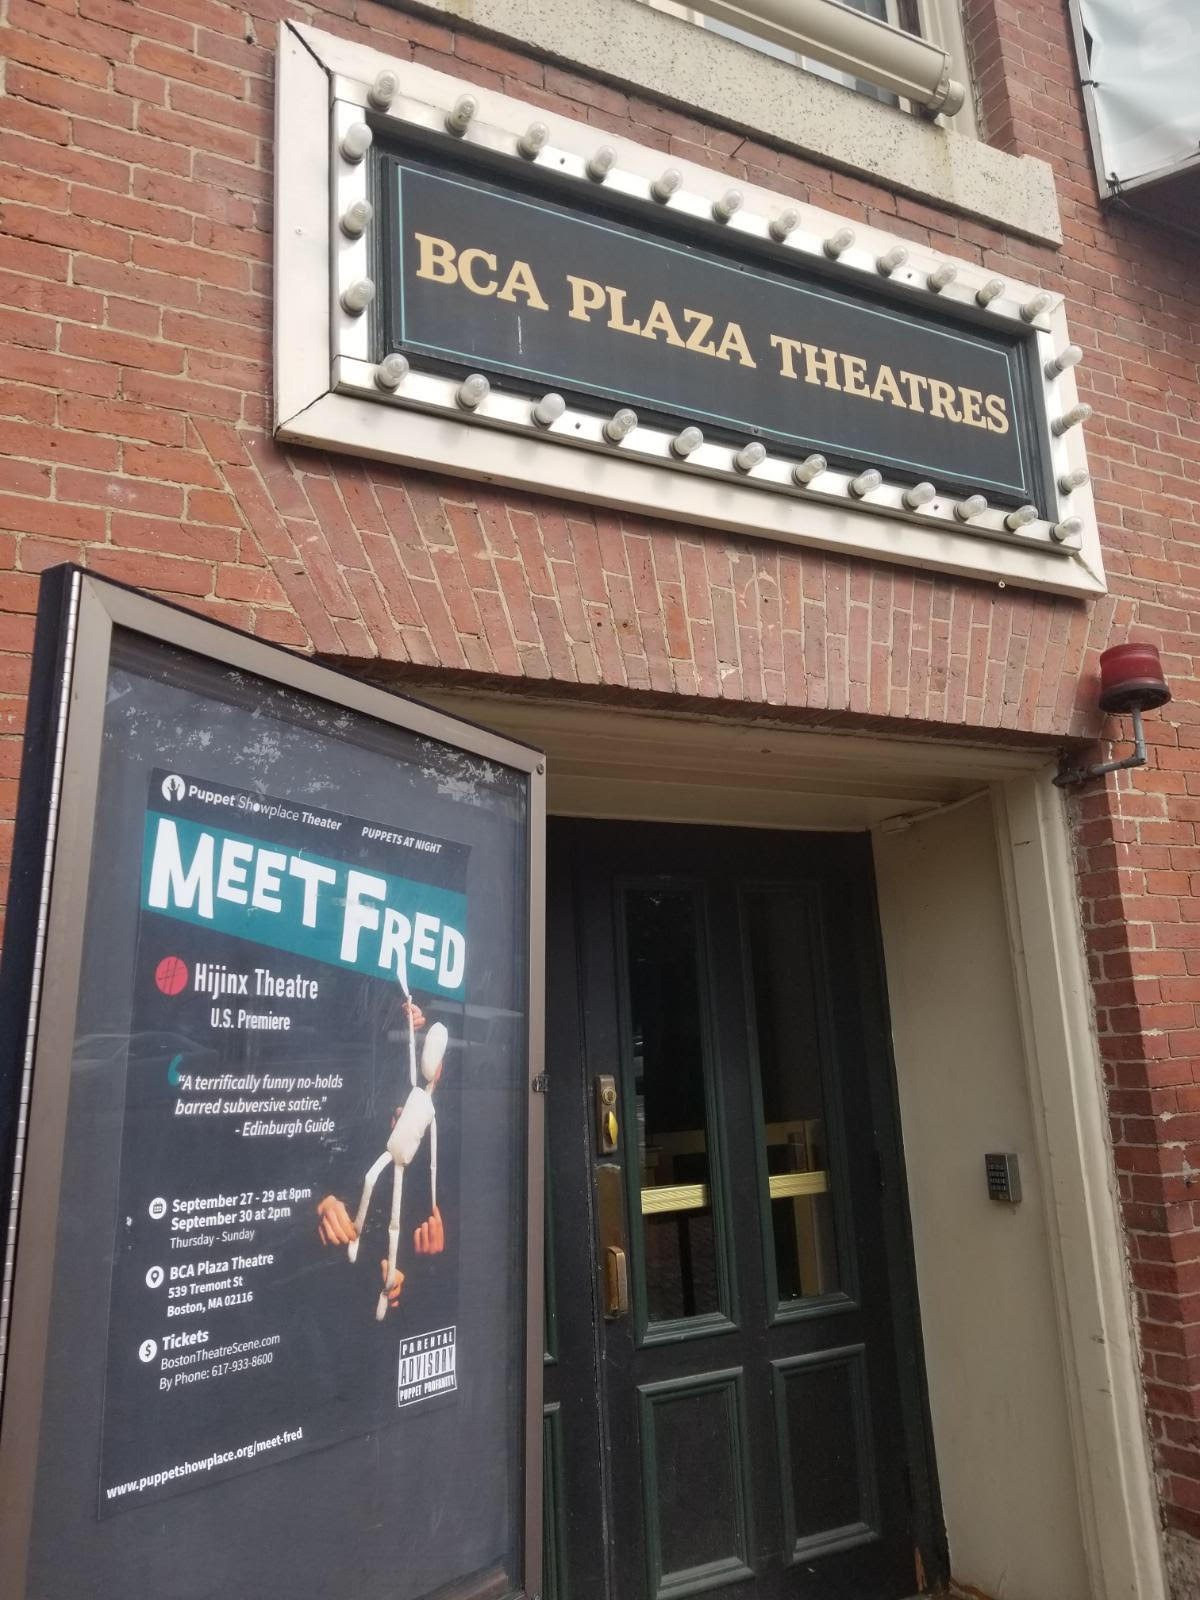 Fred Poster outside Plaza Theatre Door